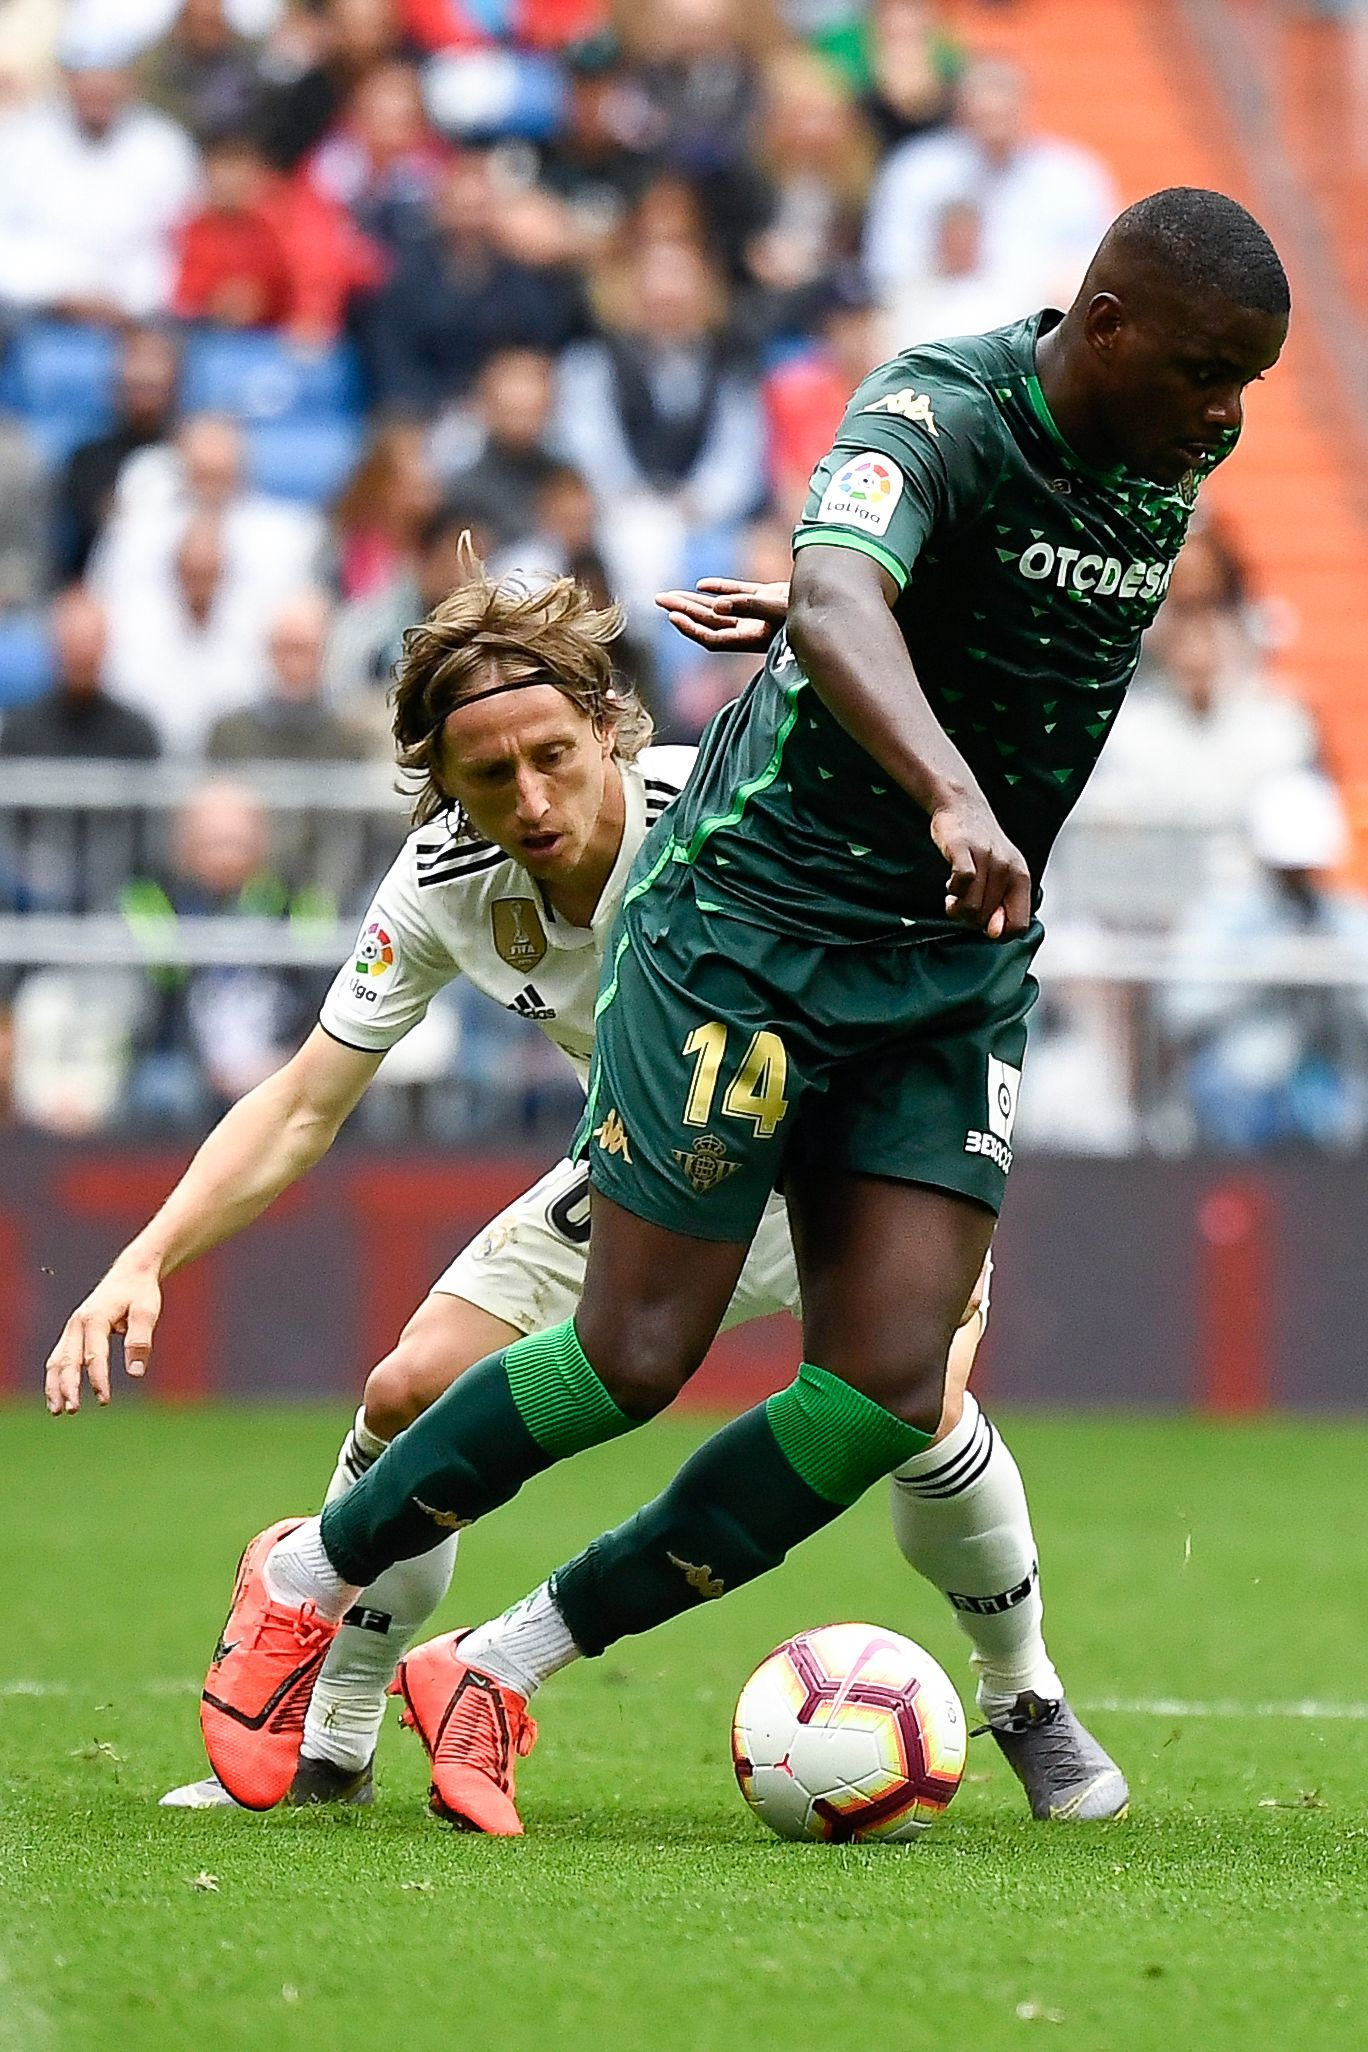 Real Madrids Croatian midfielder Luka Modric (back) challenges Real <HIT>Betis</HIT> Portuguese midfielder <HIT>William</HIT> Carvalho during the Spanish League football match between Real Madrid and Real <HIT>Betis</HIT> at the Santiago Bernabeu stadium in Madrid on May 19, 2019. (Photo by PIERRE-PHILIPPE MARCOU / AFP)